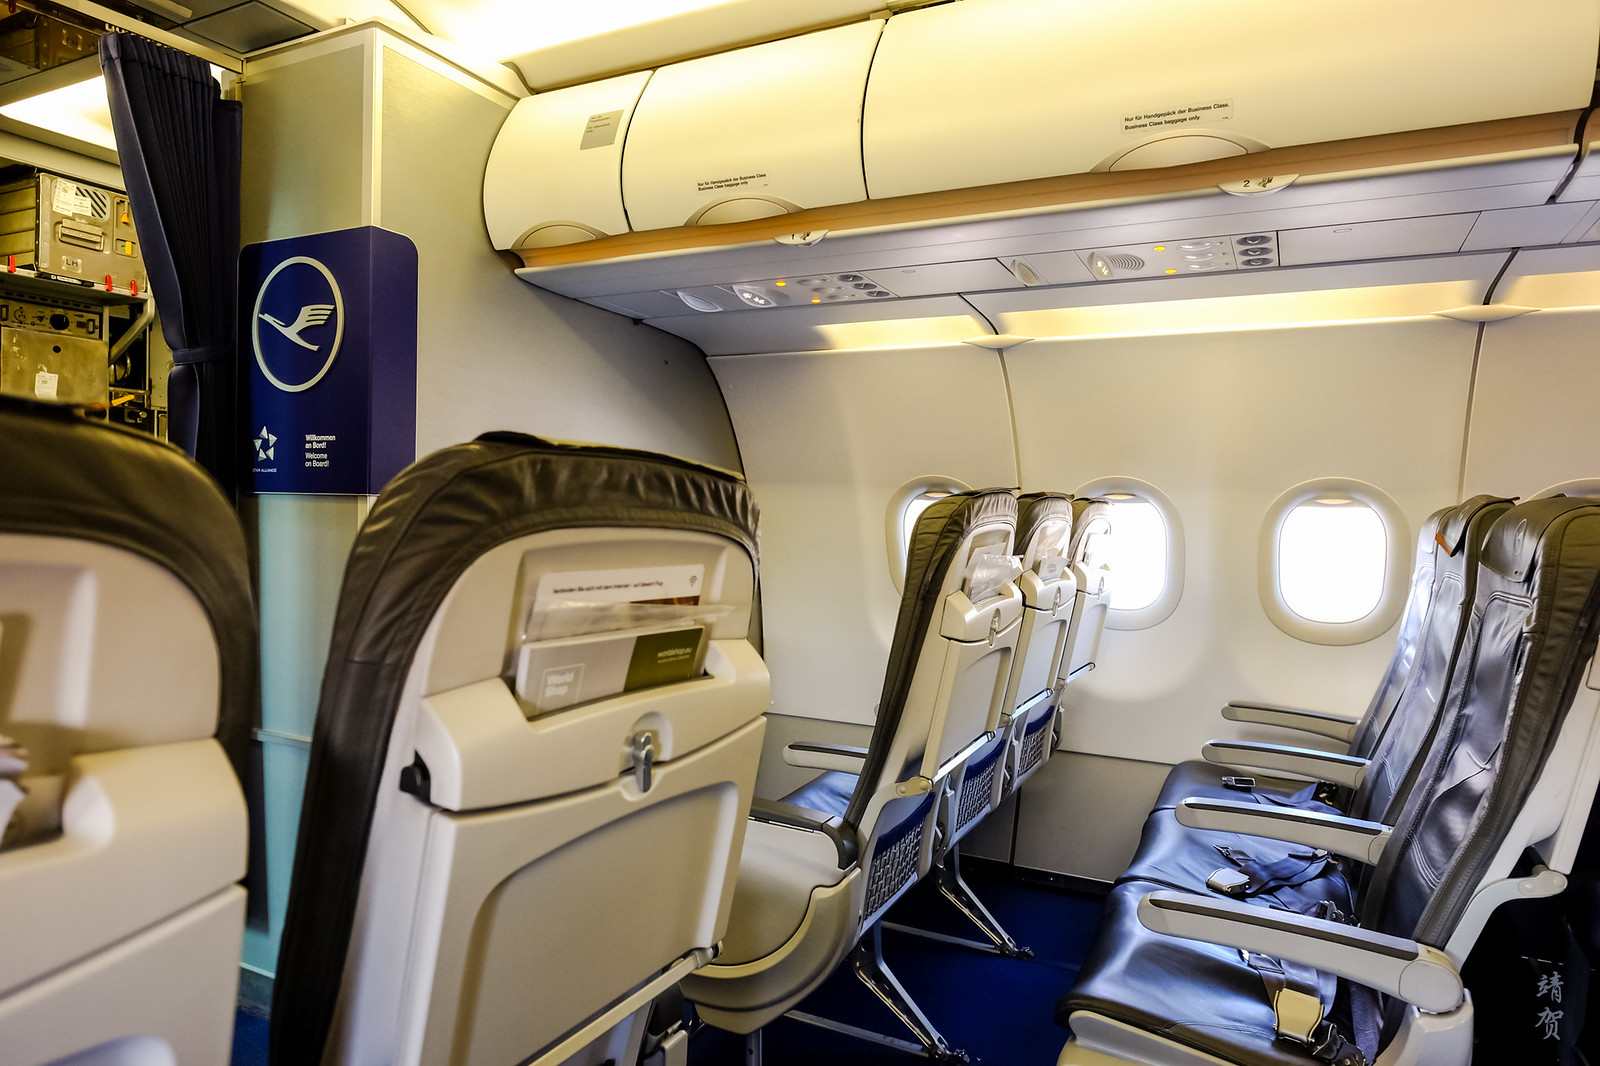 Intra-Europe Business cabin